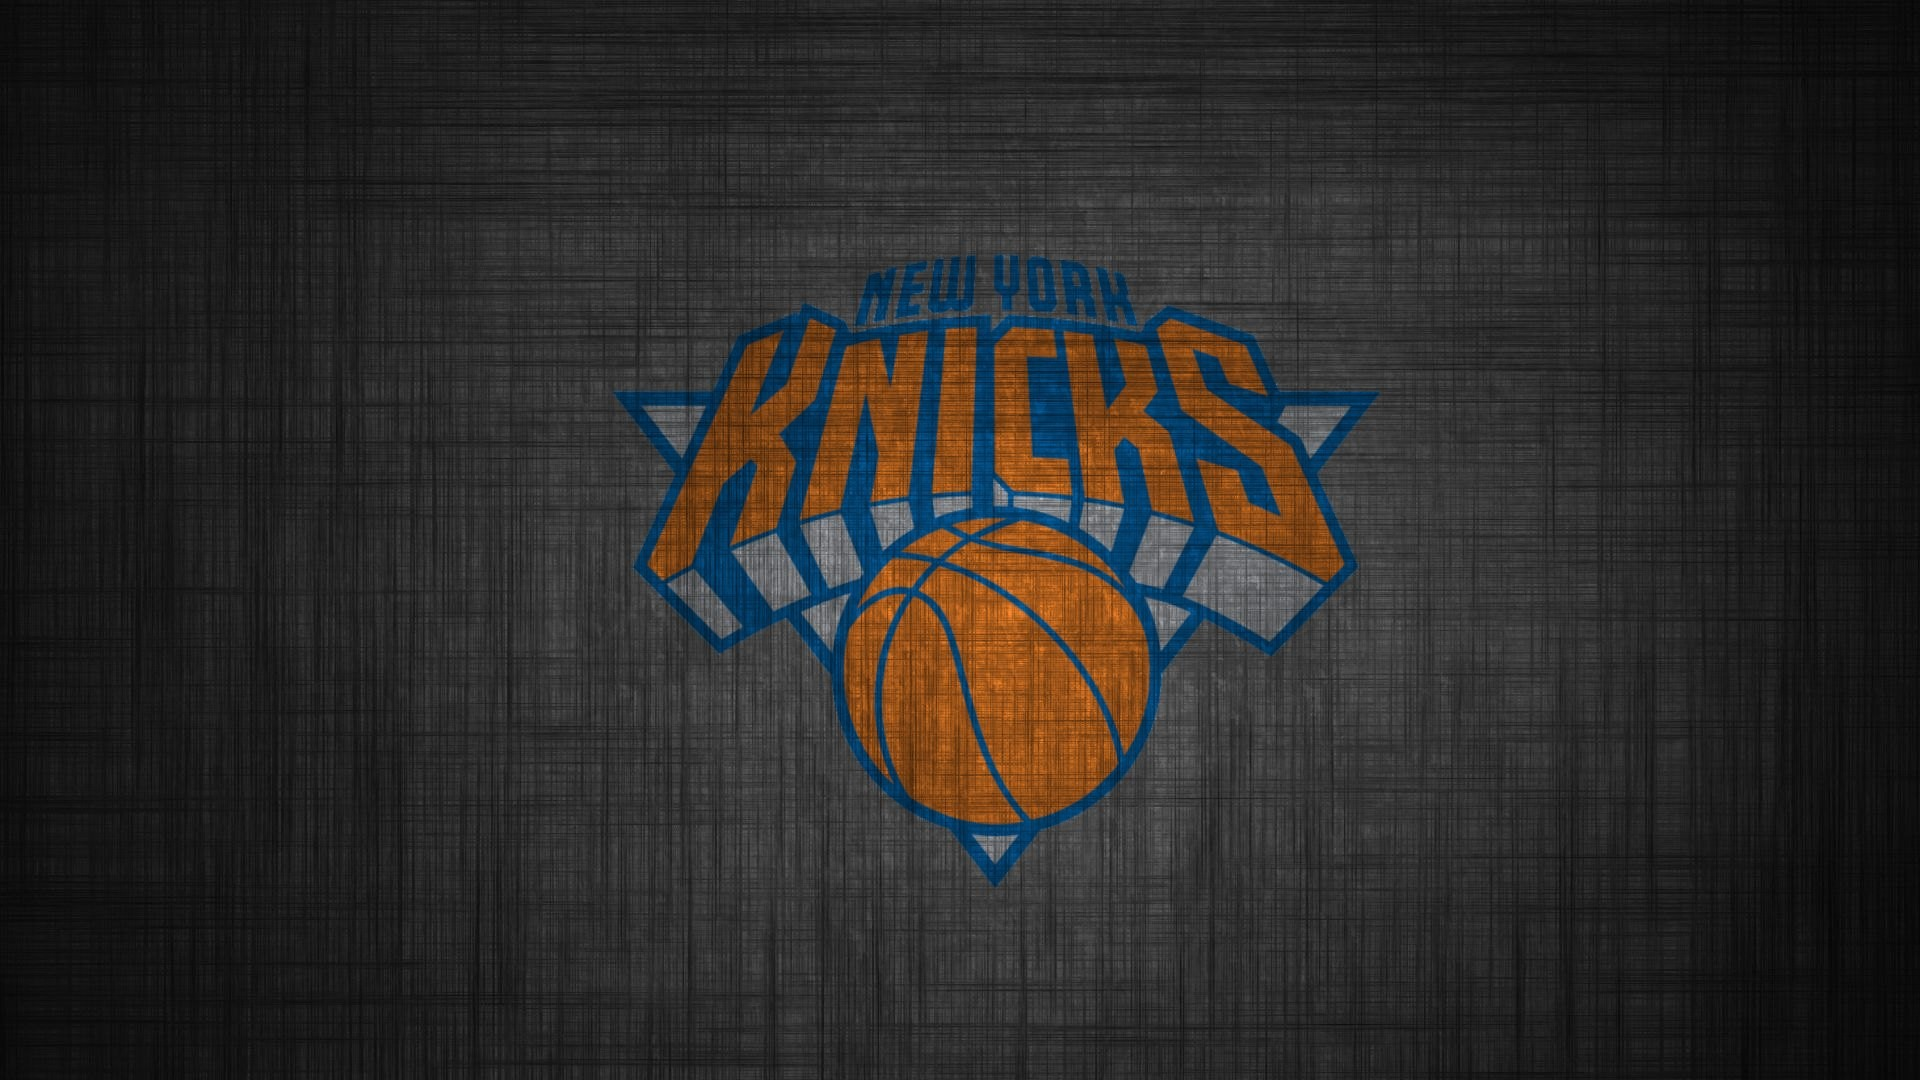 Res: 1920x1080, New York Knicks Wallpapers 7 - 1920 X 1080